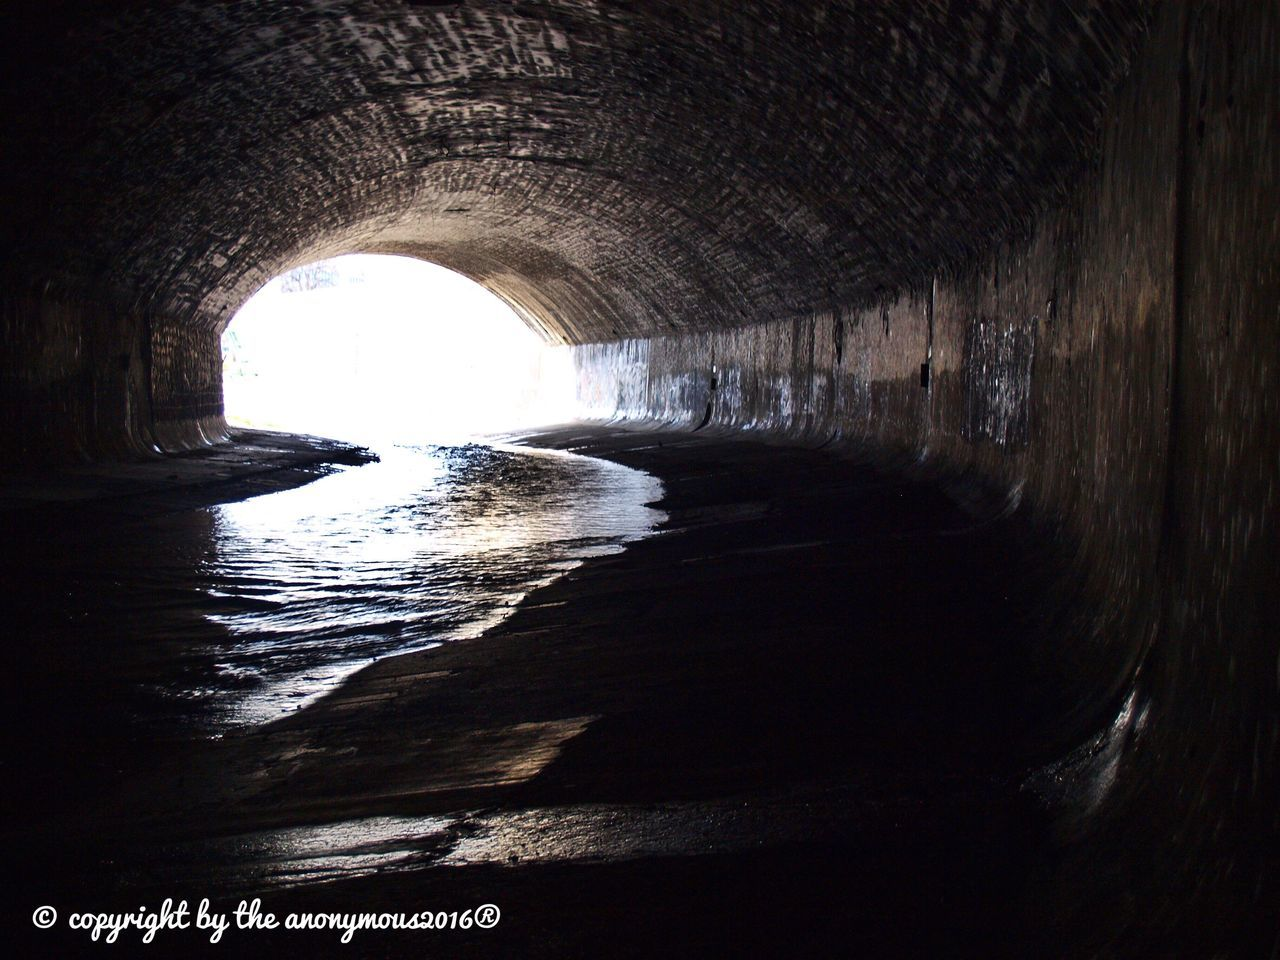 Outdoors Indoors  Arch Built Structure Tunnel Architecture Nature Day No People Water Sky Capture The Moment Beauty In Nature Eye4photography  EyeEm Best Edits EyeEm Best Shots EyeEm Gallery EyeEm Nature Lover EyeEmBestPics Architecture